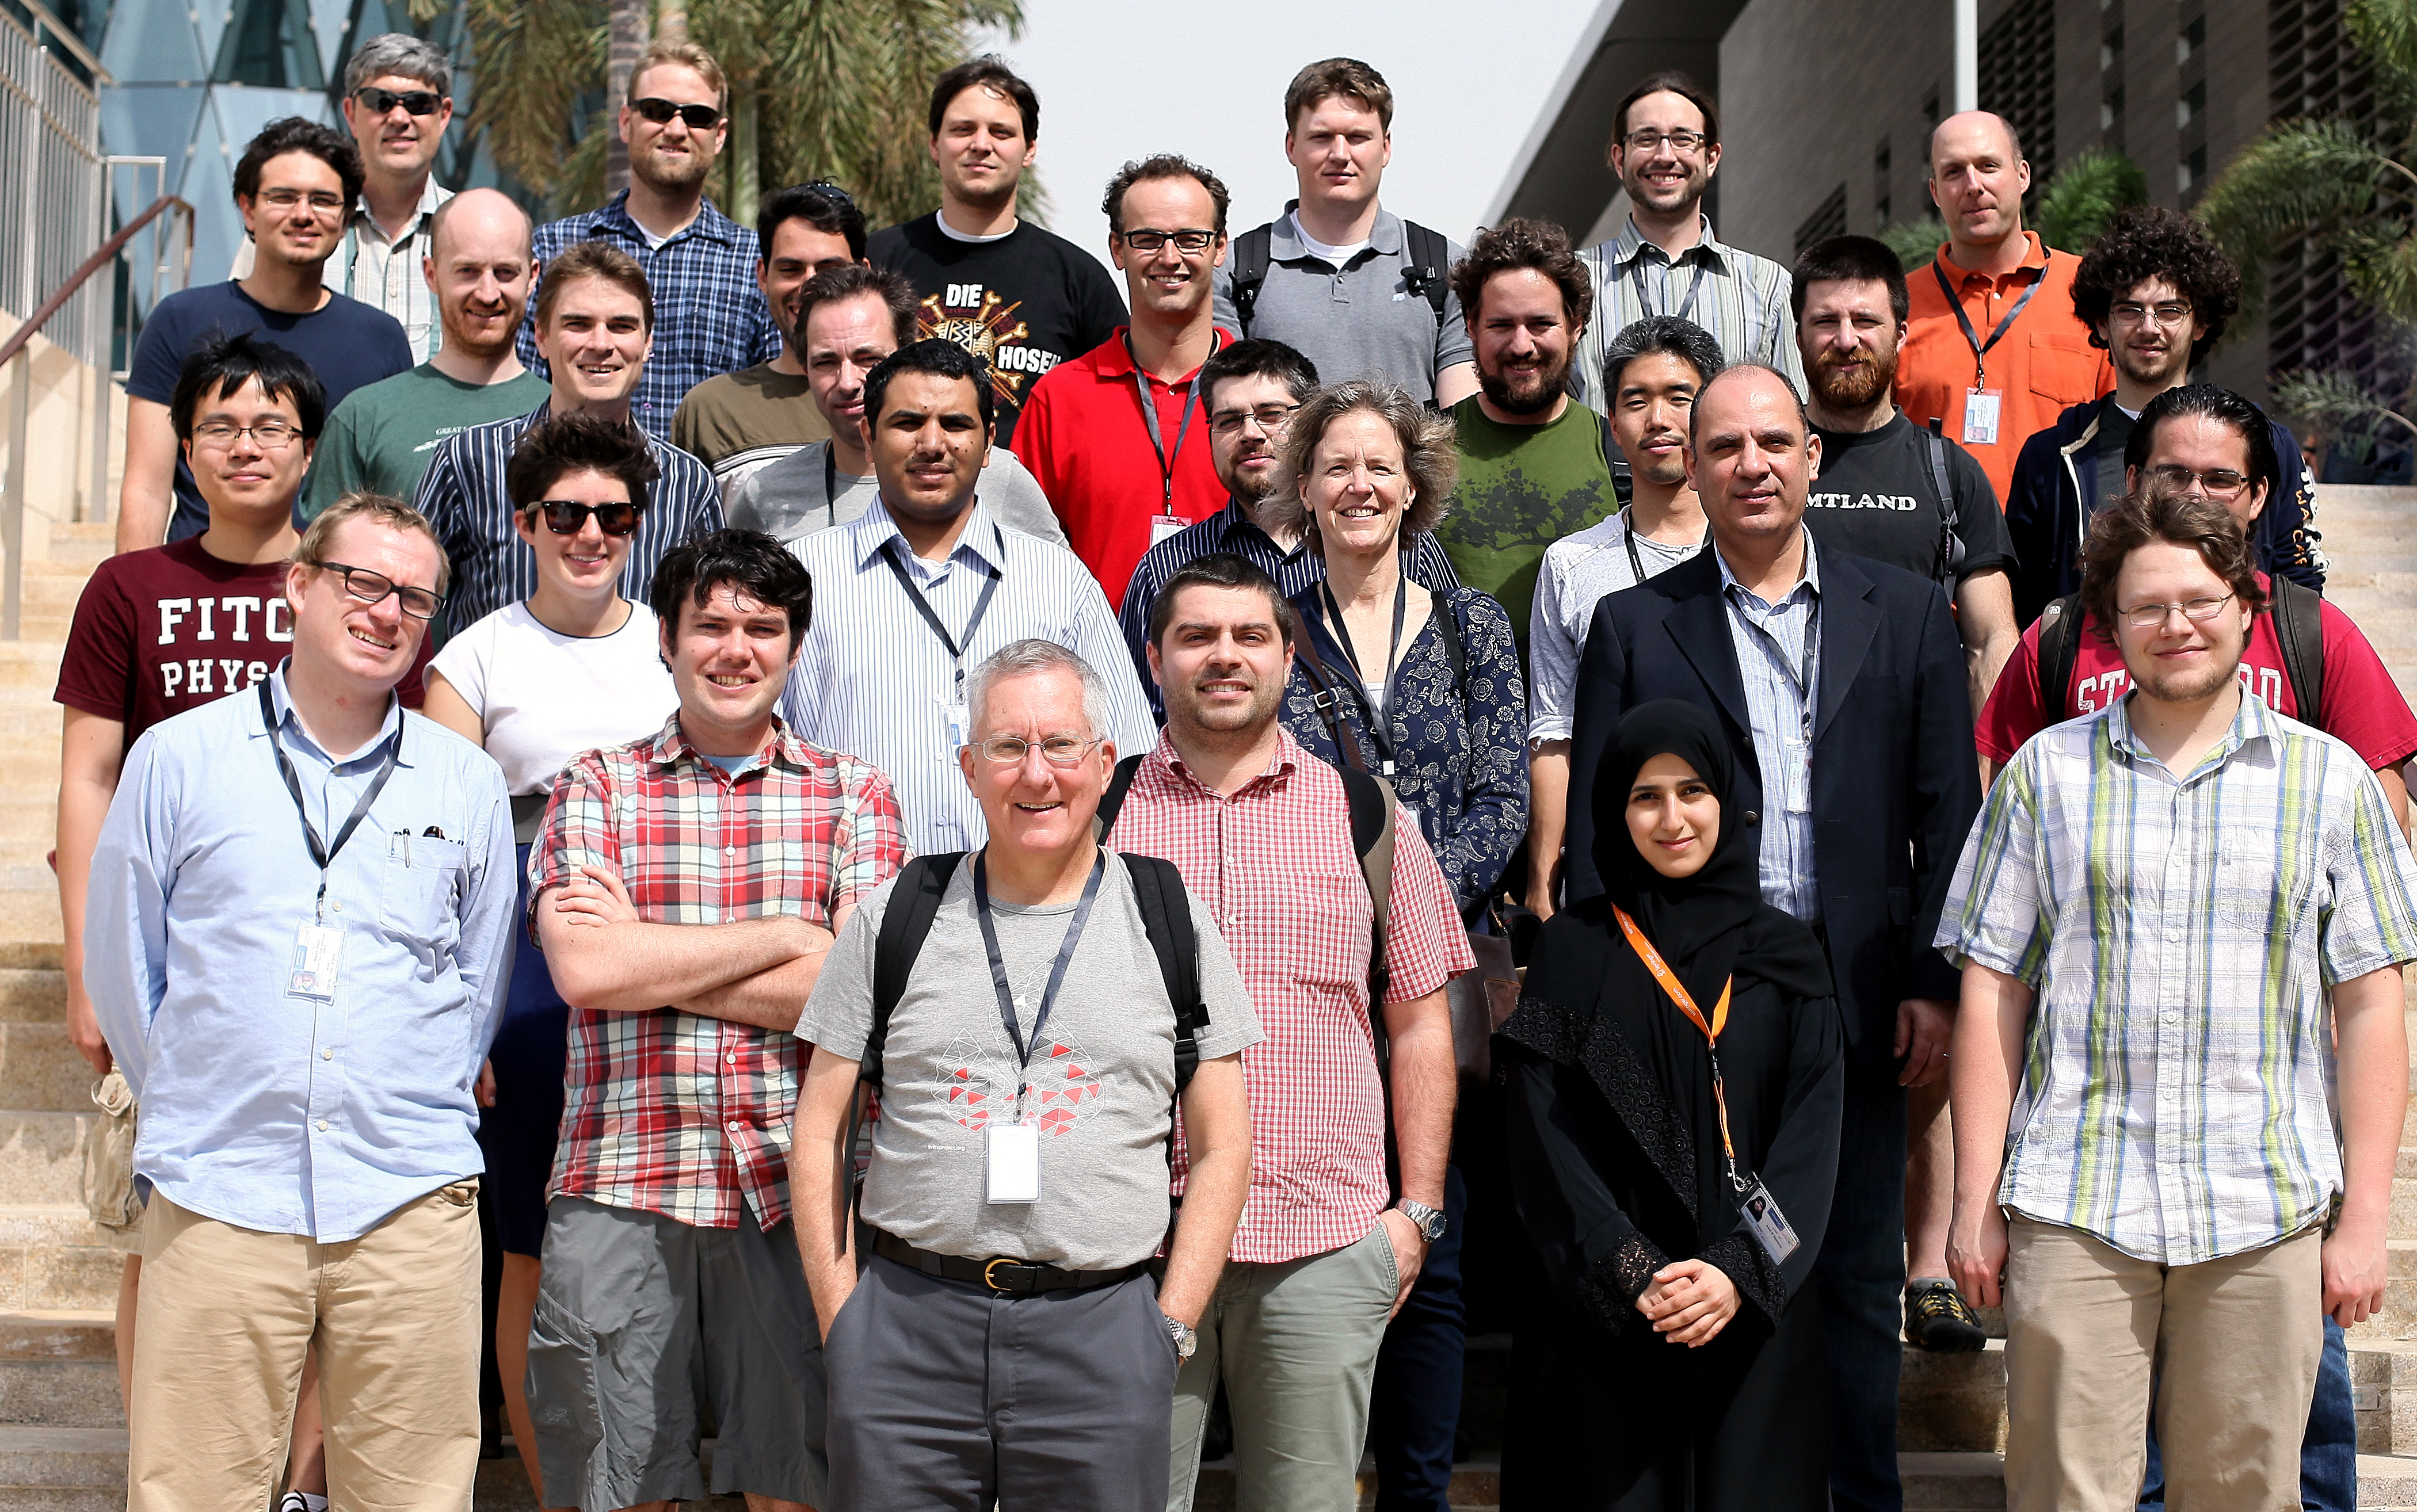 _images/HPC3-2012-group-photo.jpg